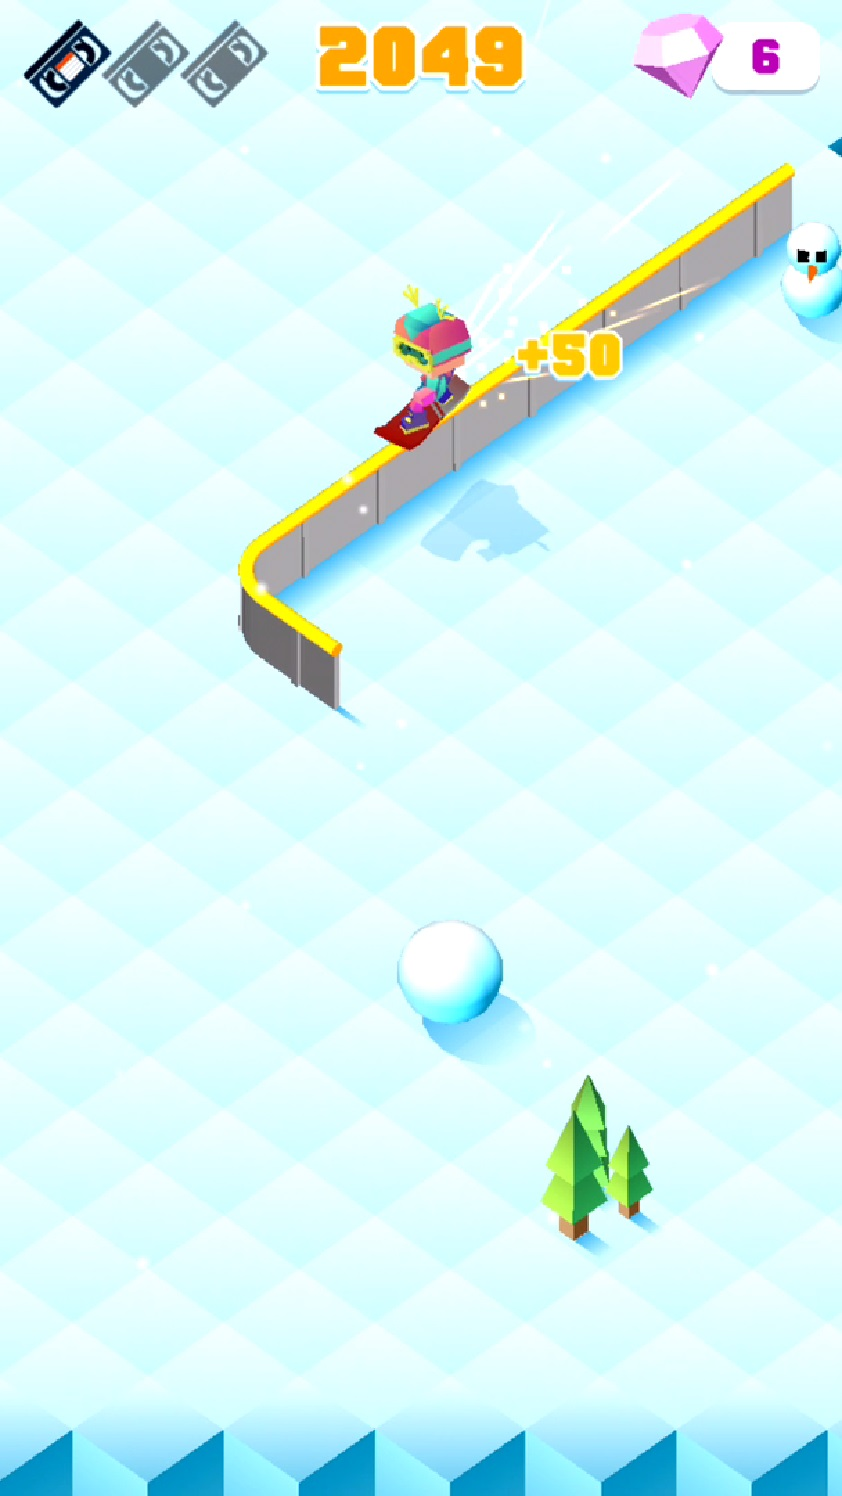 Blocky Snowboarding androidアプリスクリーンショット3